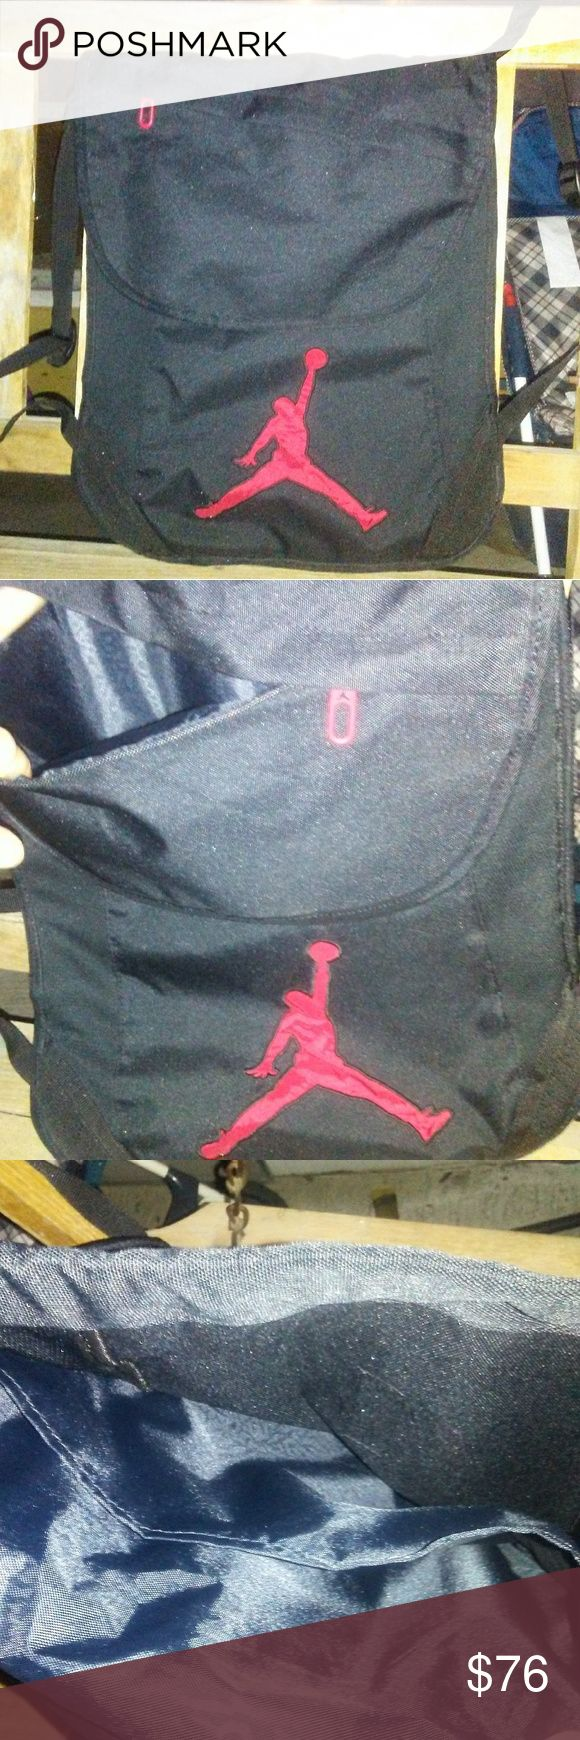 Jordan Brand Black & Red- NWOT backpack This is onw cool and stylish backpack.. Not to mention its high level of quality... And the fact that its Jordan Brand! Yes that Jordan... Like the sneakers! Black and red color scheme and very utilitarian while loght and convenient at the same time. There are several little pockets and sections throughout the shell of this bag. The straps are thin and unirritable to the skin or body. Used for one day of college and I couldnt use ir anymore because it…